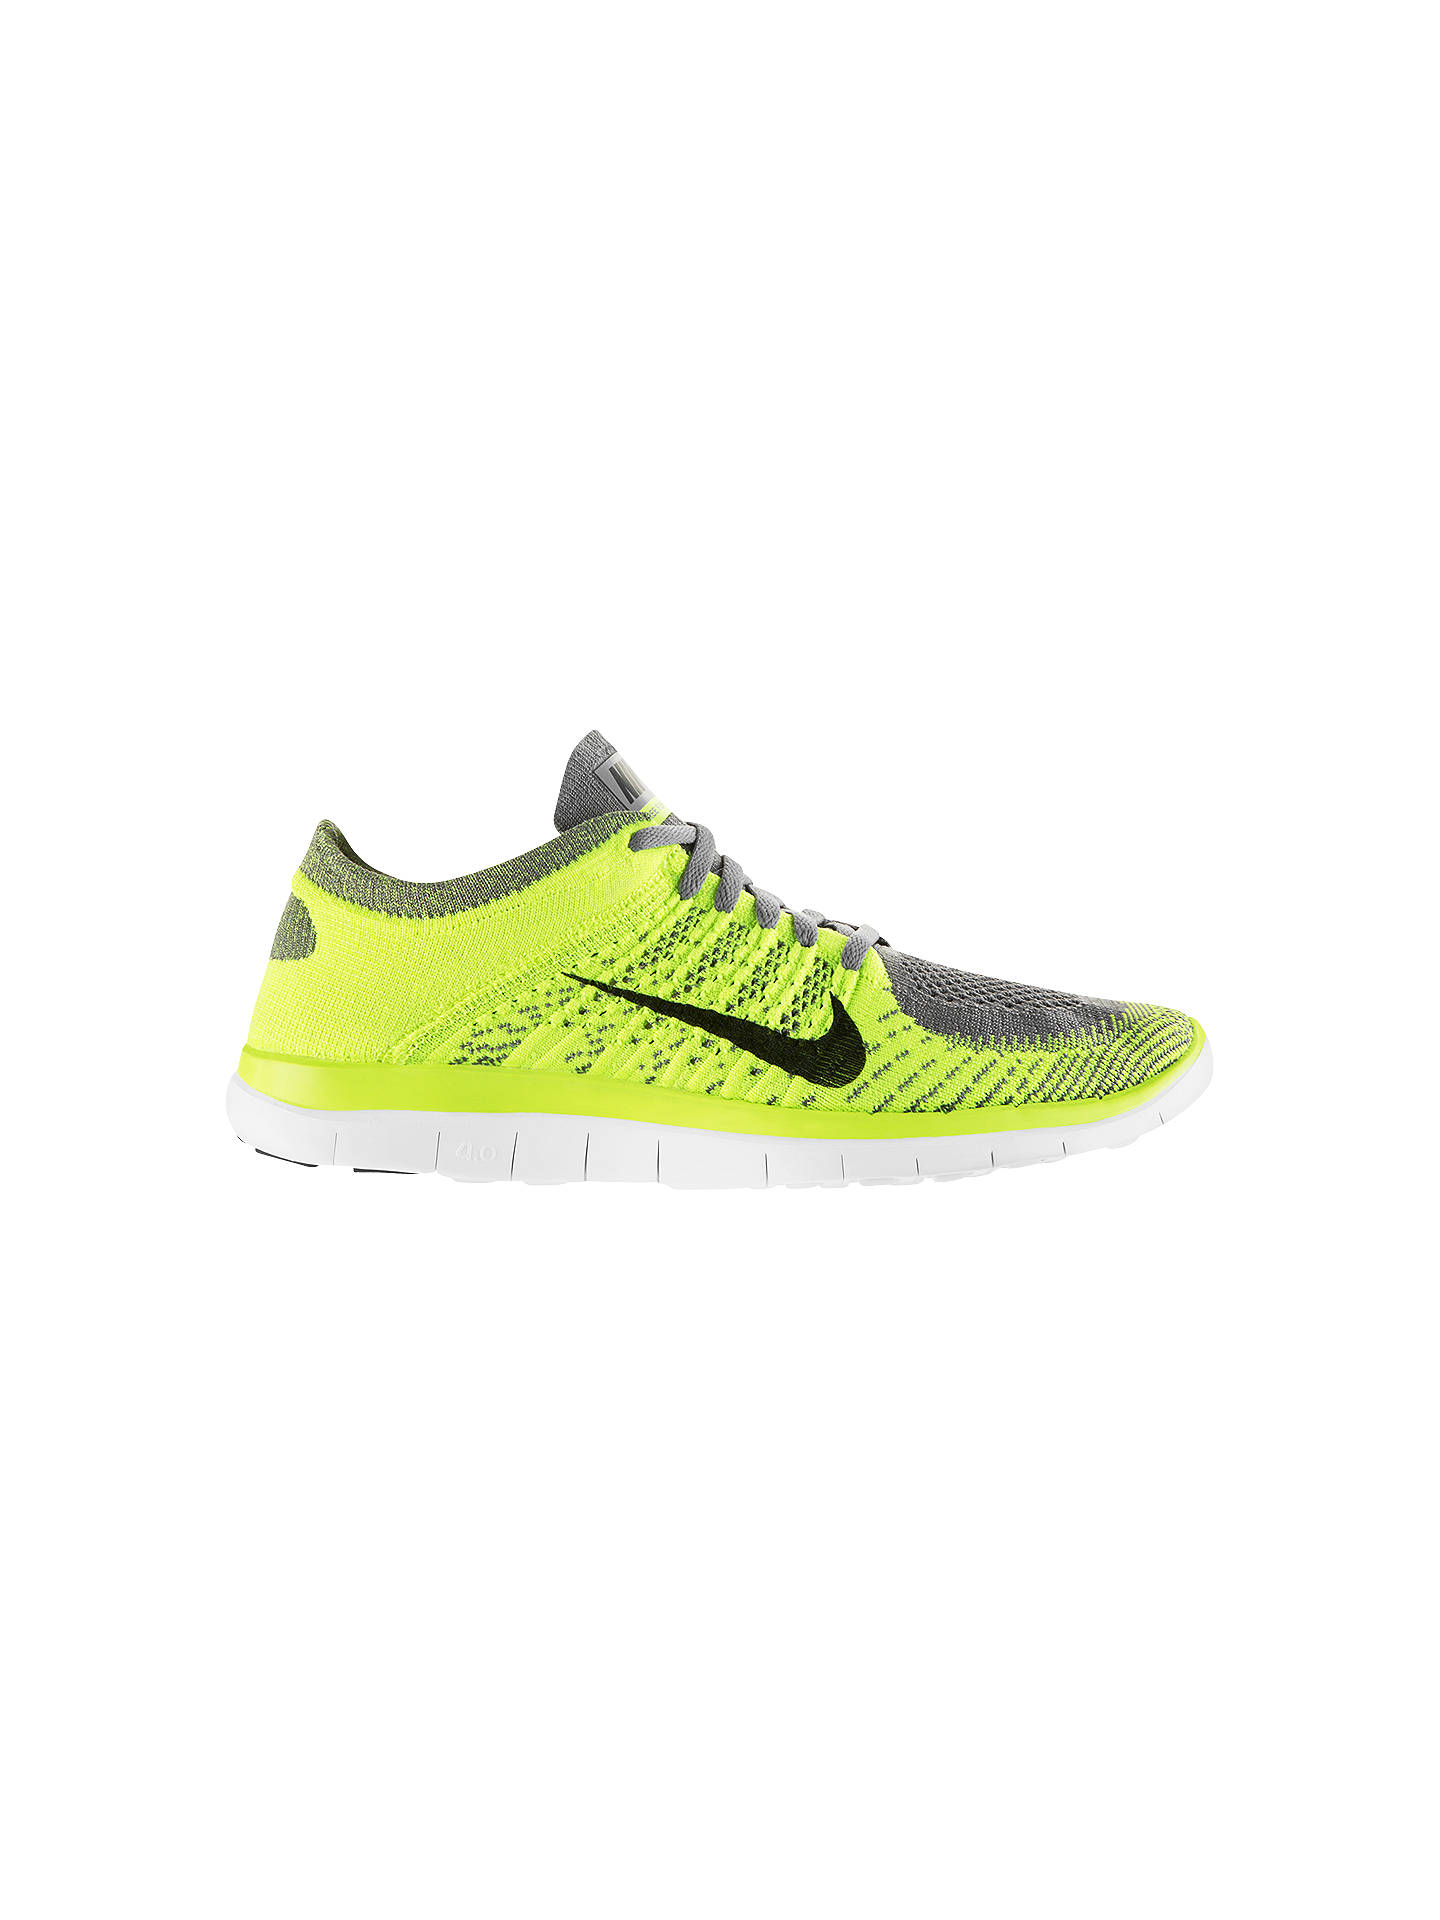 vamos a hacerlo suspender profesional  Nike Free Men's 4.0 Flyknit Running Shoes, Yellow/Grey at John Lewis &  Partners